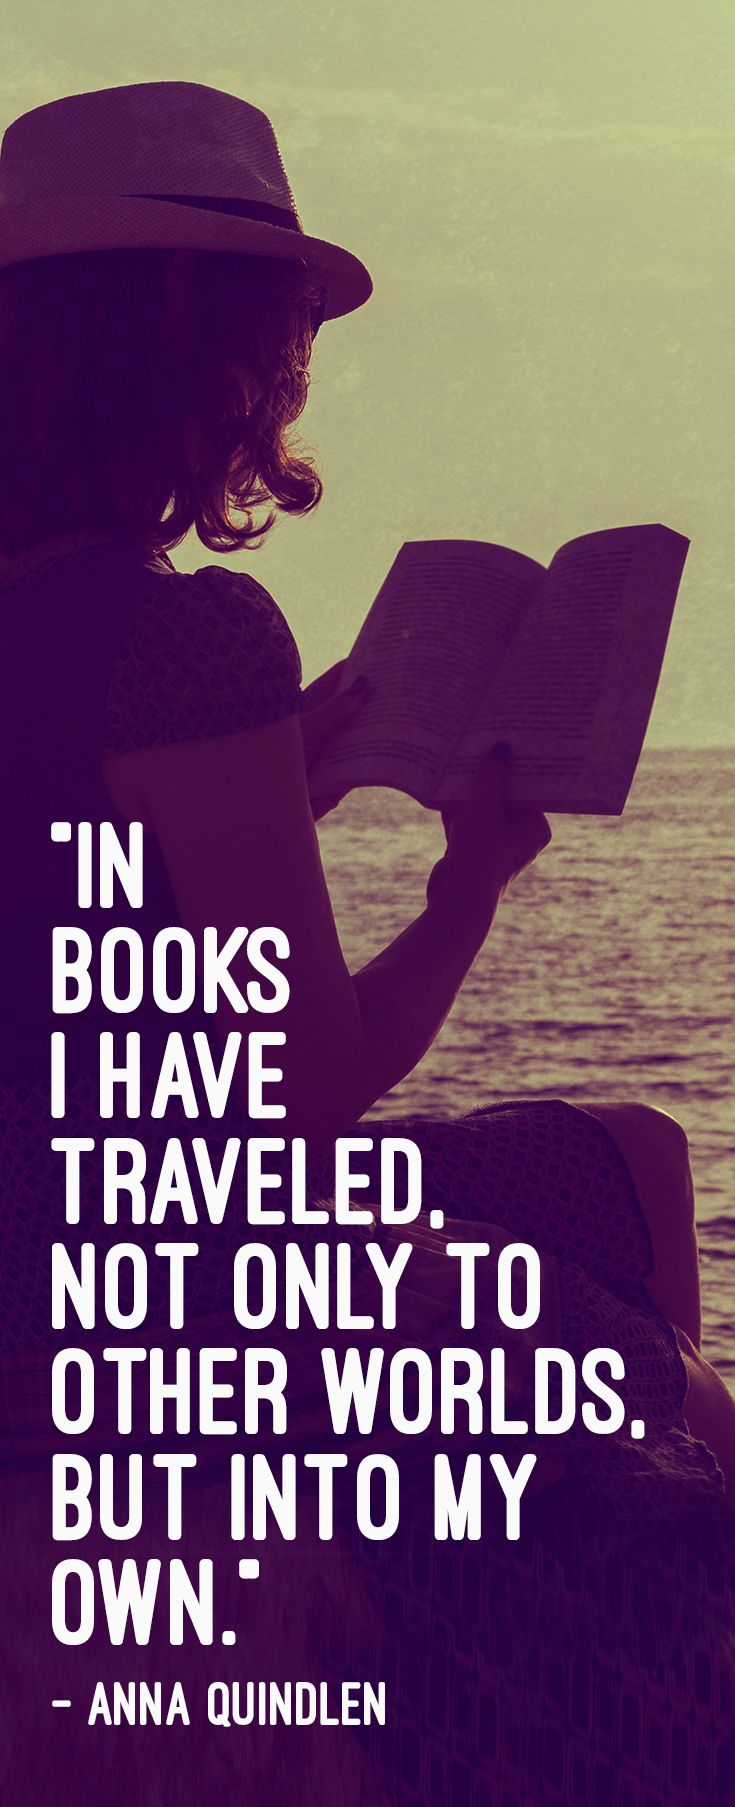 21 Bookish Quotes for a Rainy Day Reading quotes, Book